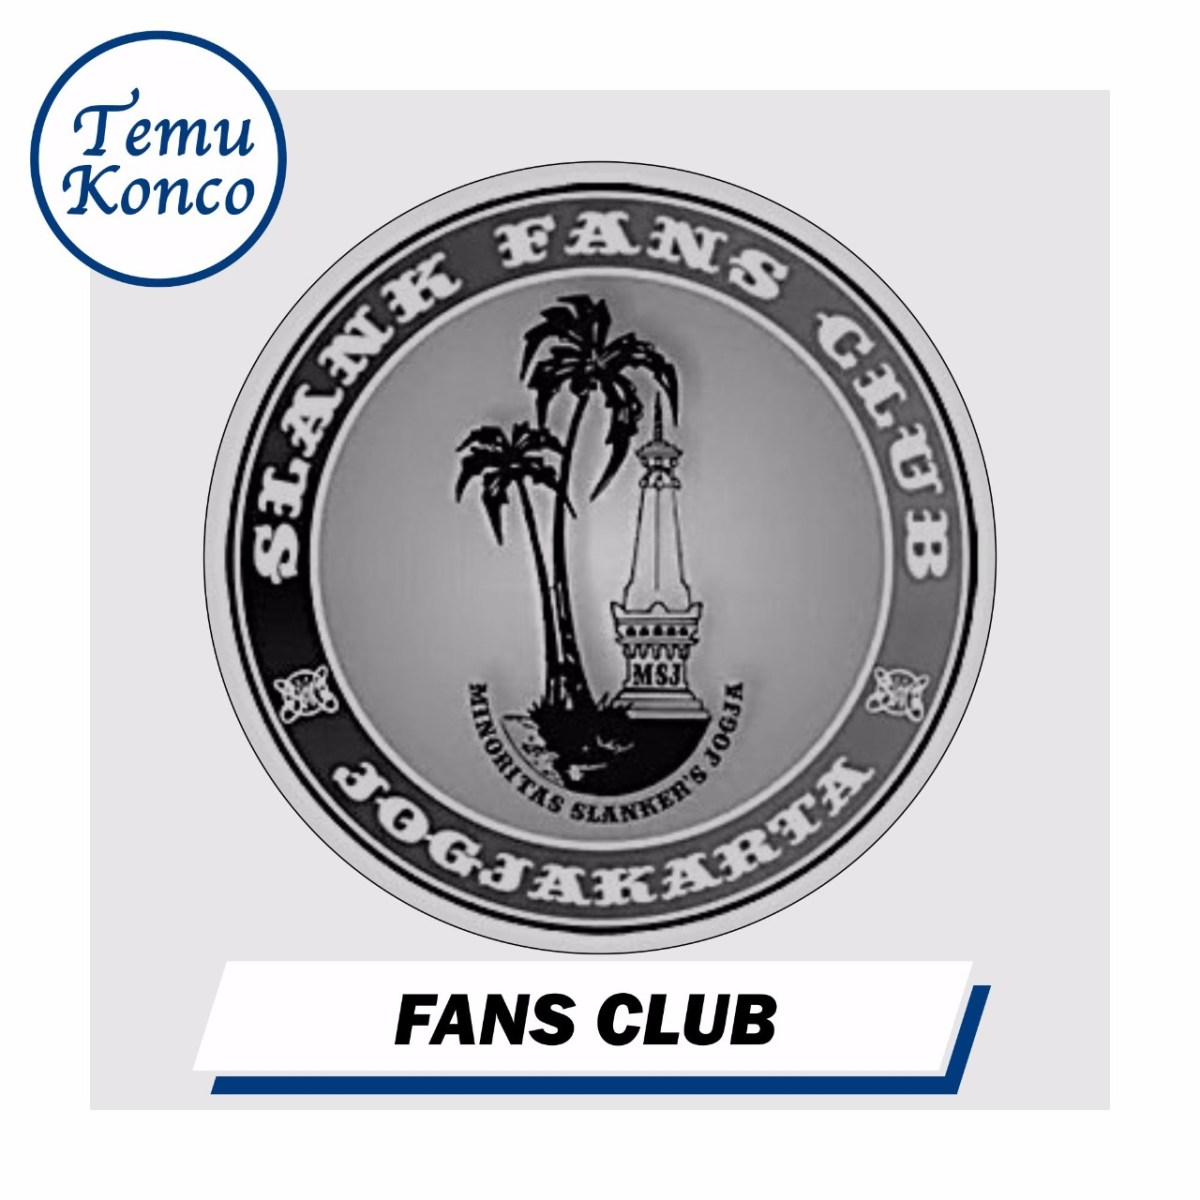 [TemuKonco Podcast Eps. 19] - Fans Club